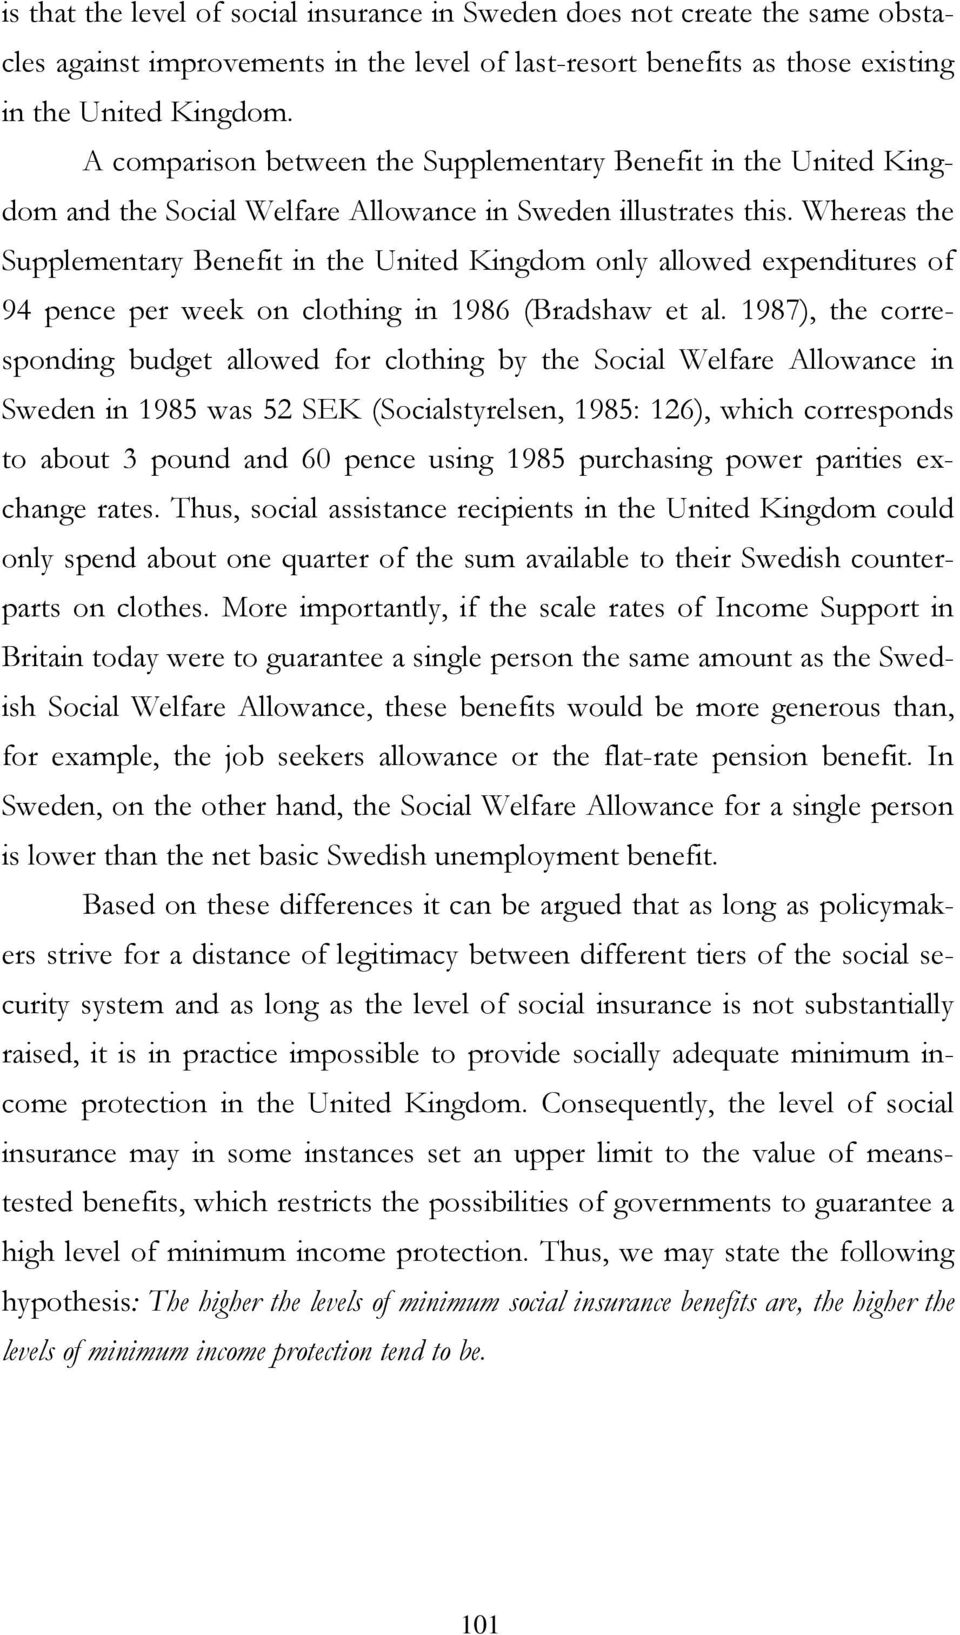 Whereas the Supplementary Benefit in the United Kingdom only allowed expenditures of 94 pence per week on clothing in 1986 (Bradshaw et al.